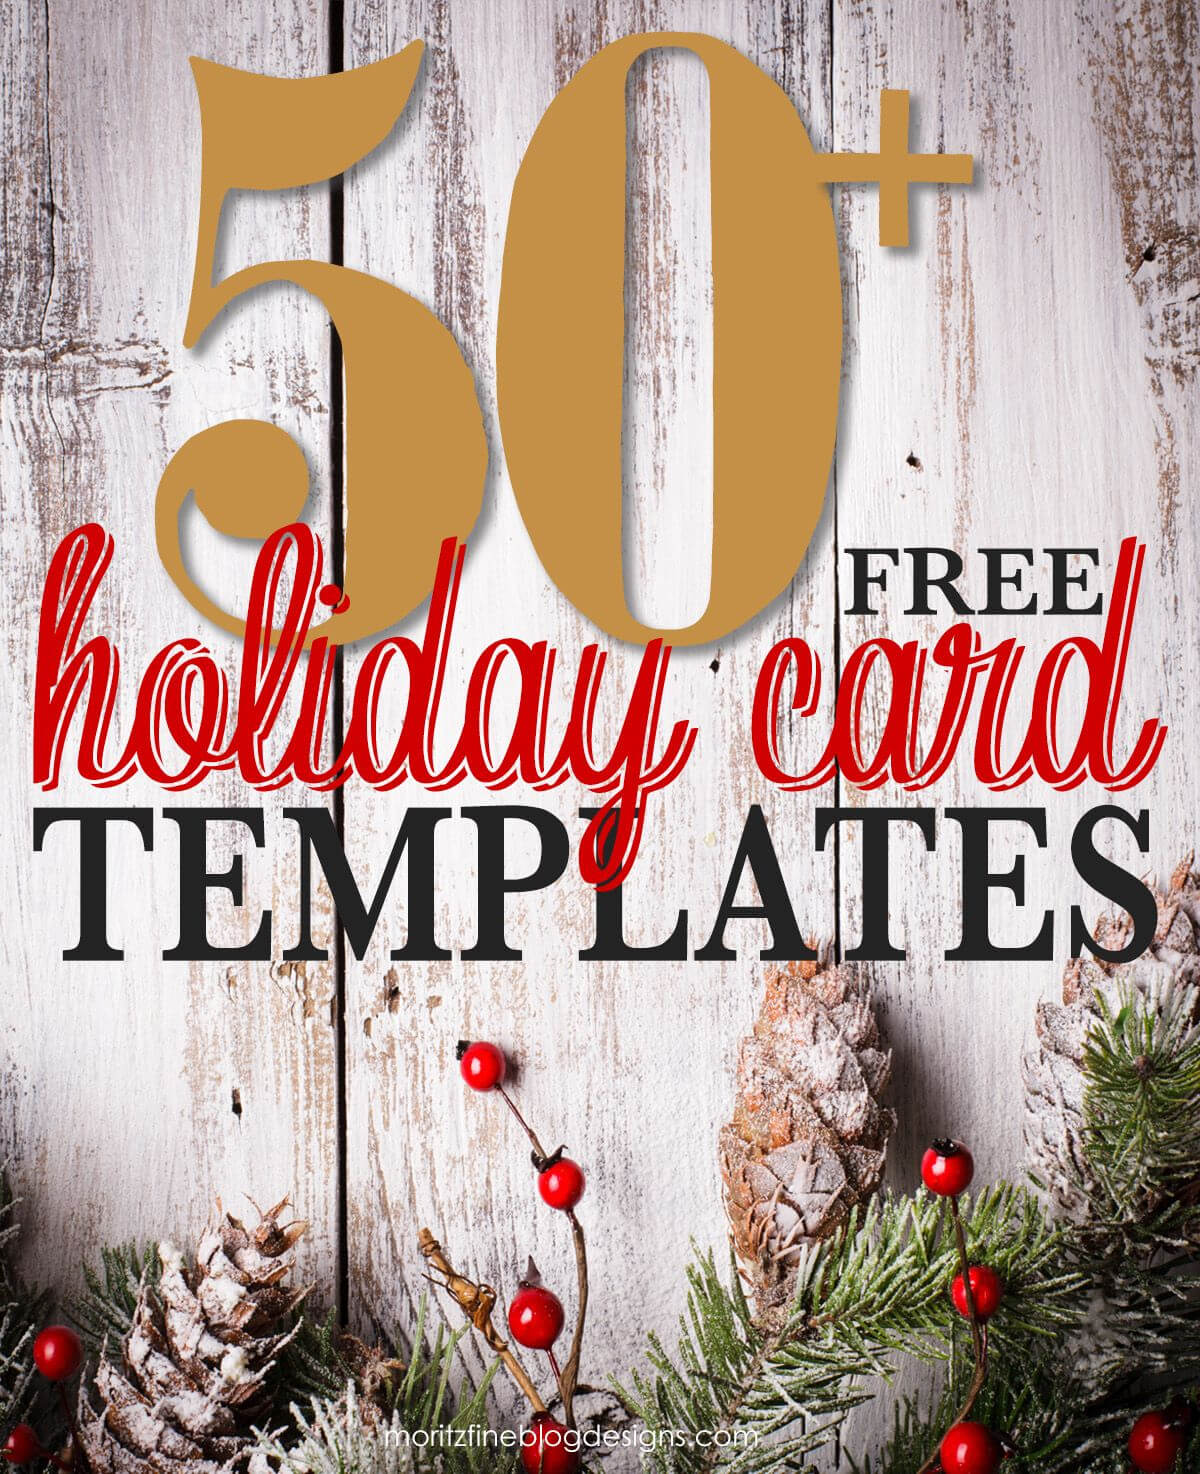 50 + Free Holiday Photo Card Templates | Christmas Photo In Free Holiday Photo Card Templates